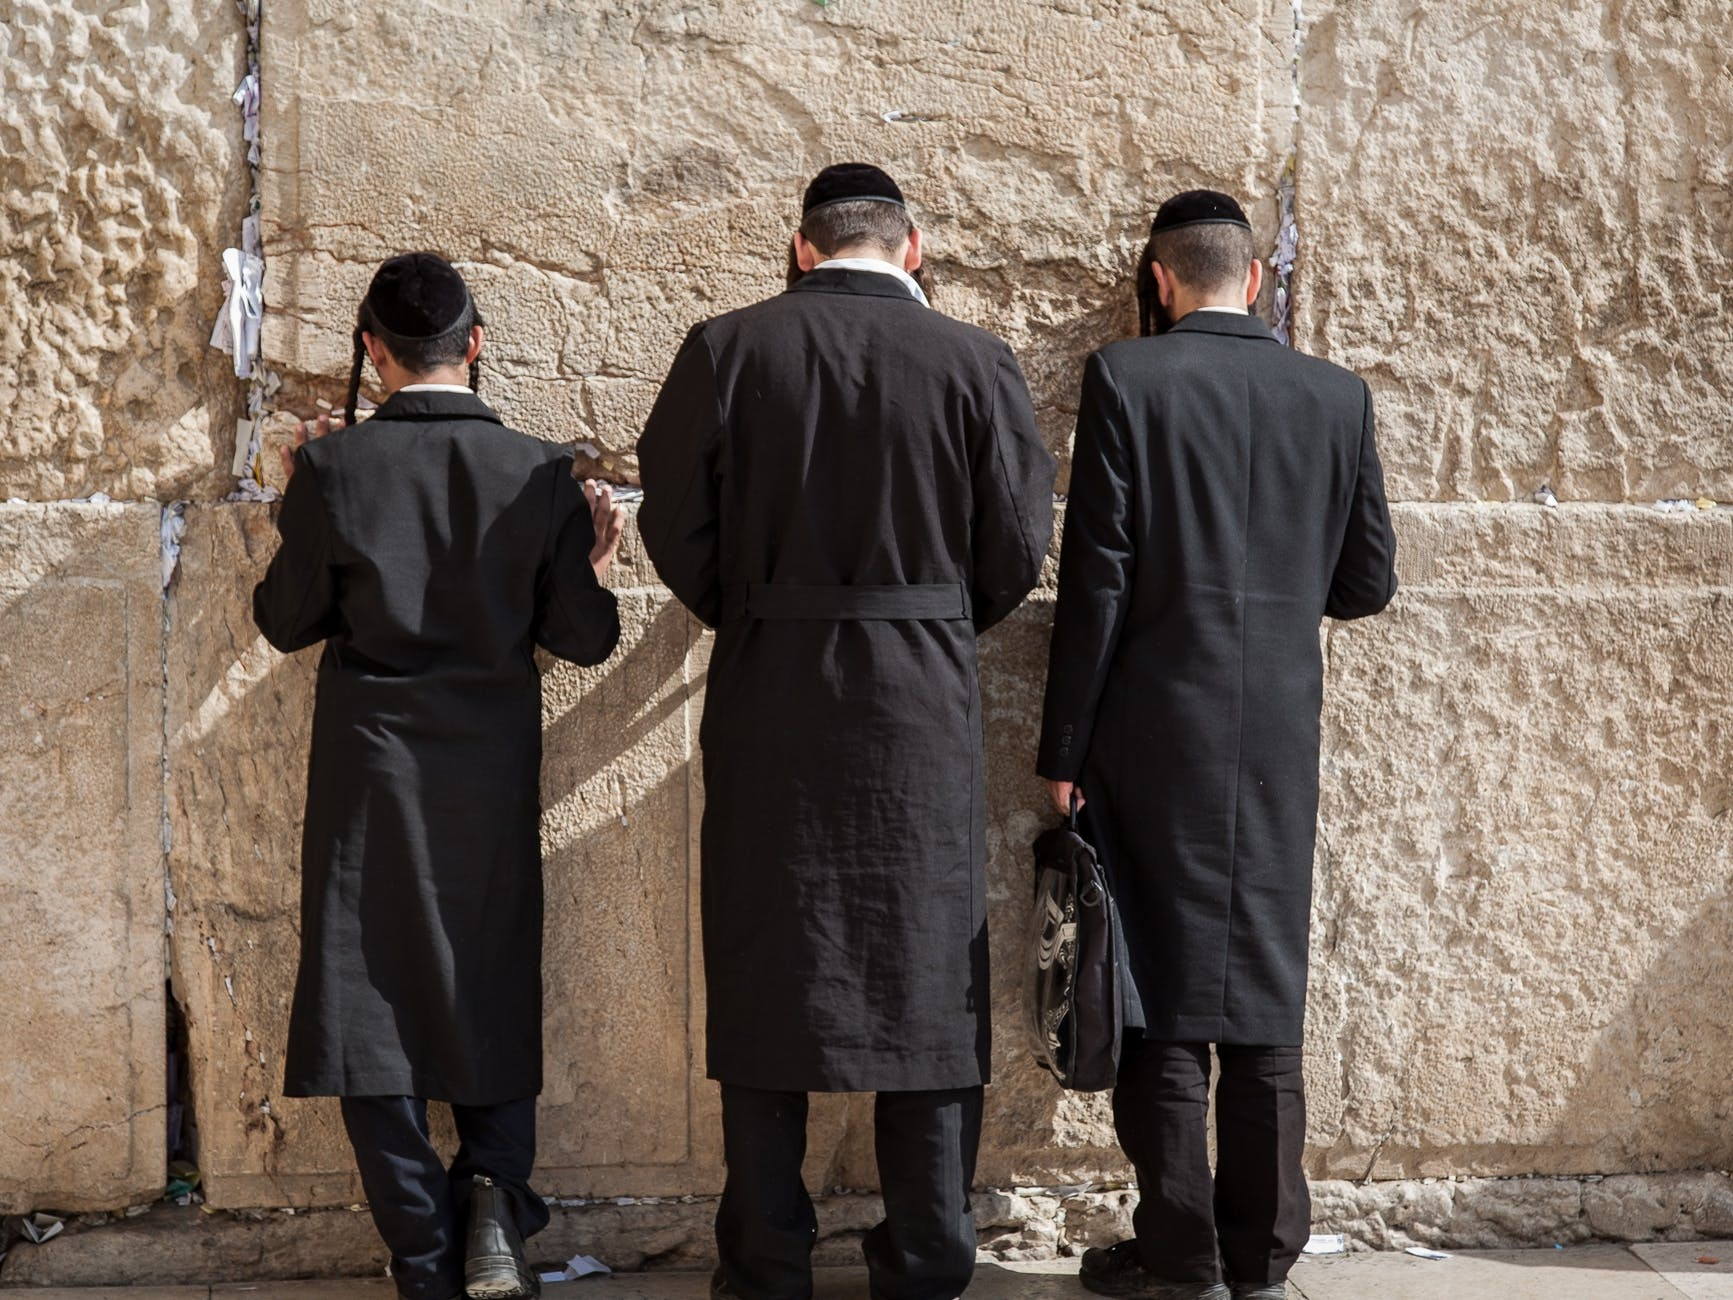 anonymous religious hasidim jews during pray near western wall